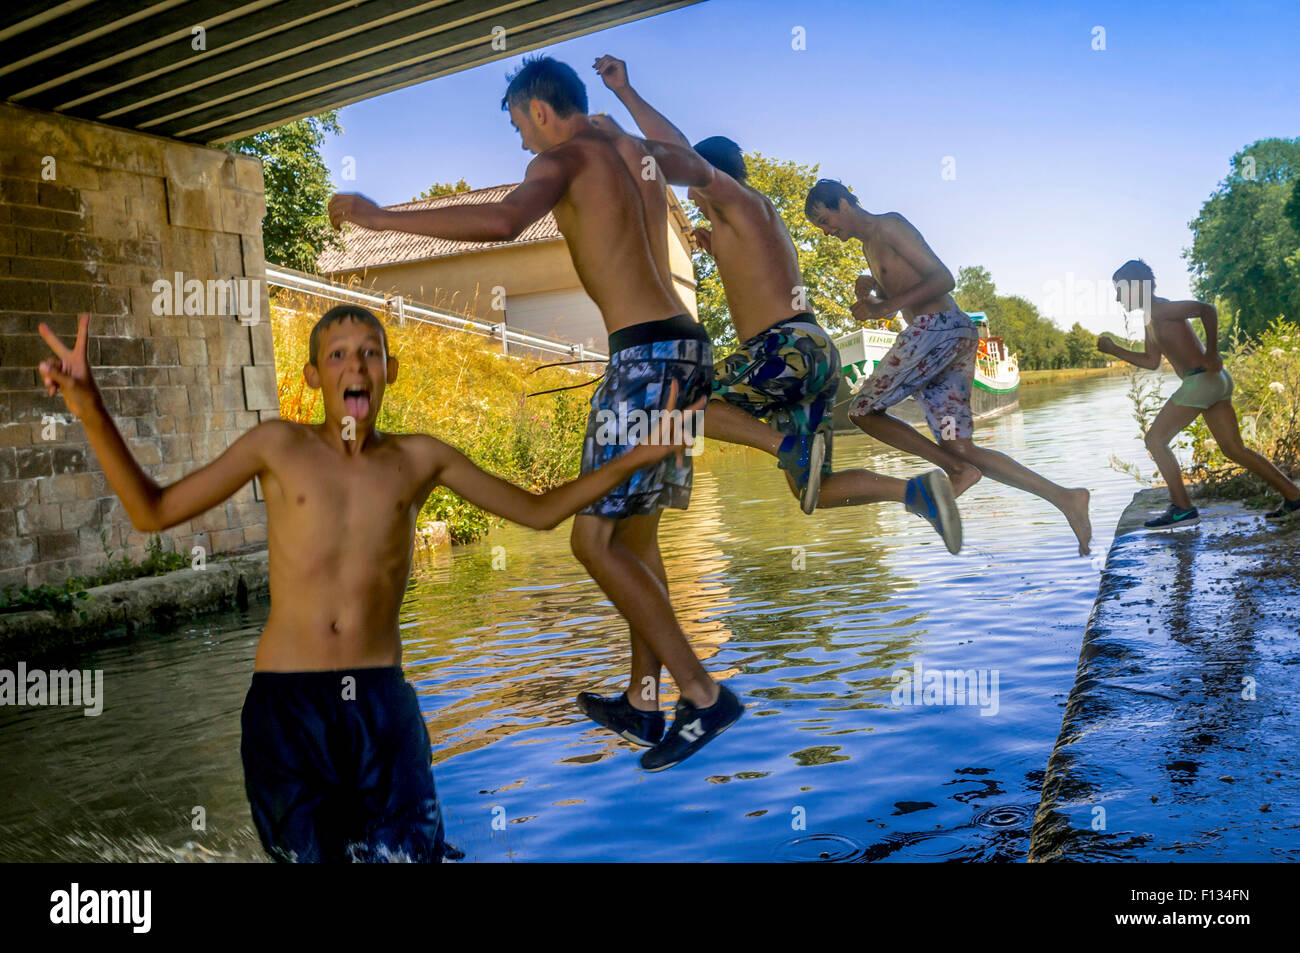 French youths jumping into canal, Yonne, France - Stock Image